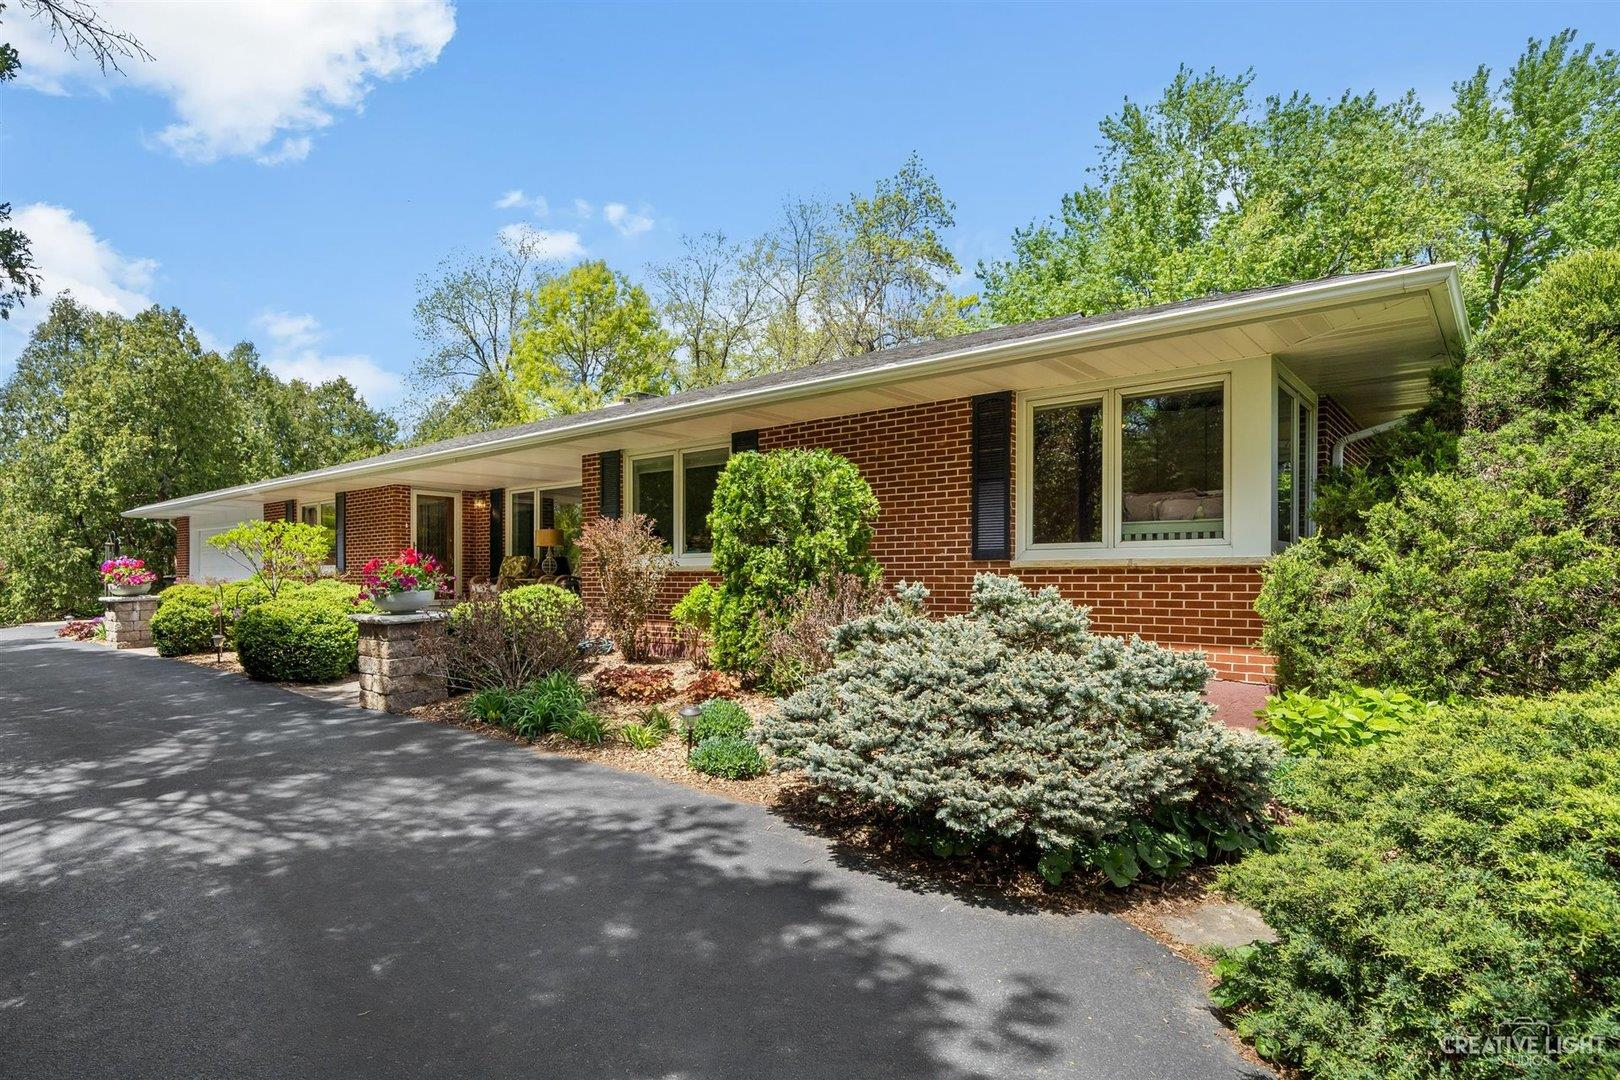 27W658 Hickory Lane, West Chicago, IL 60185 - #: 11086493